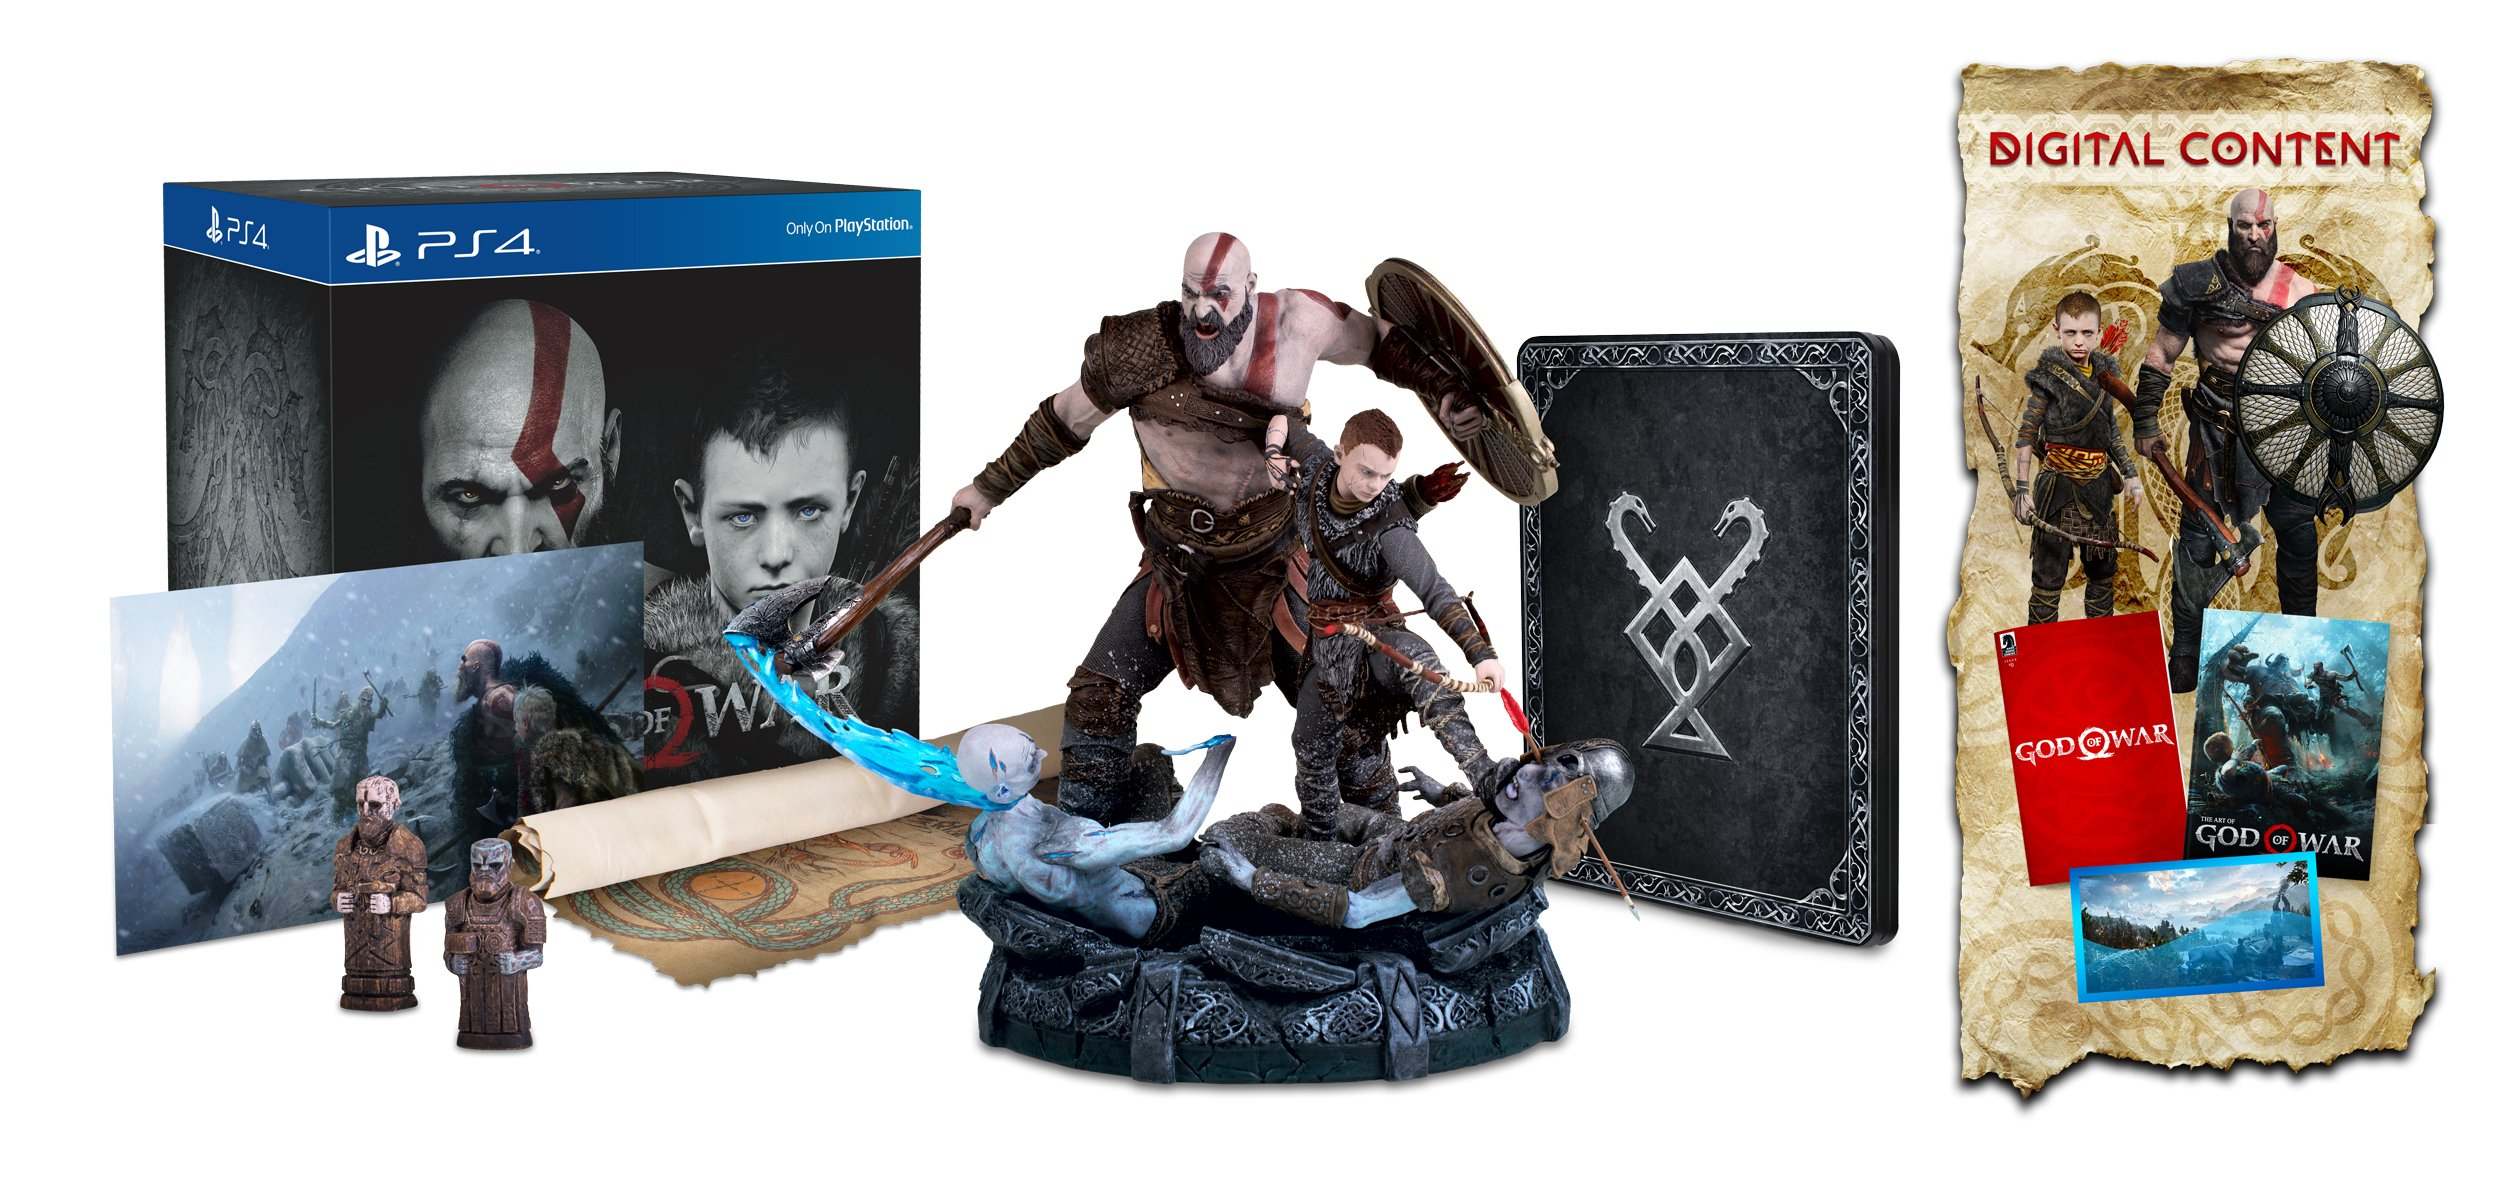 Buy Collectors Edition God Of War Now!